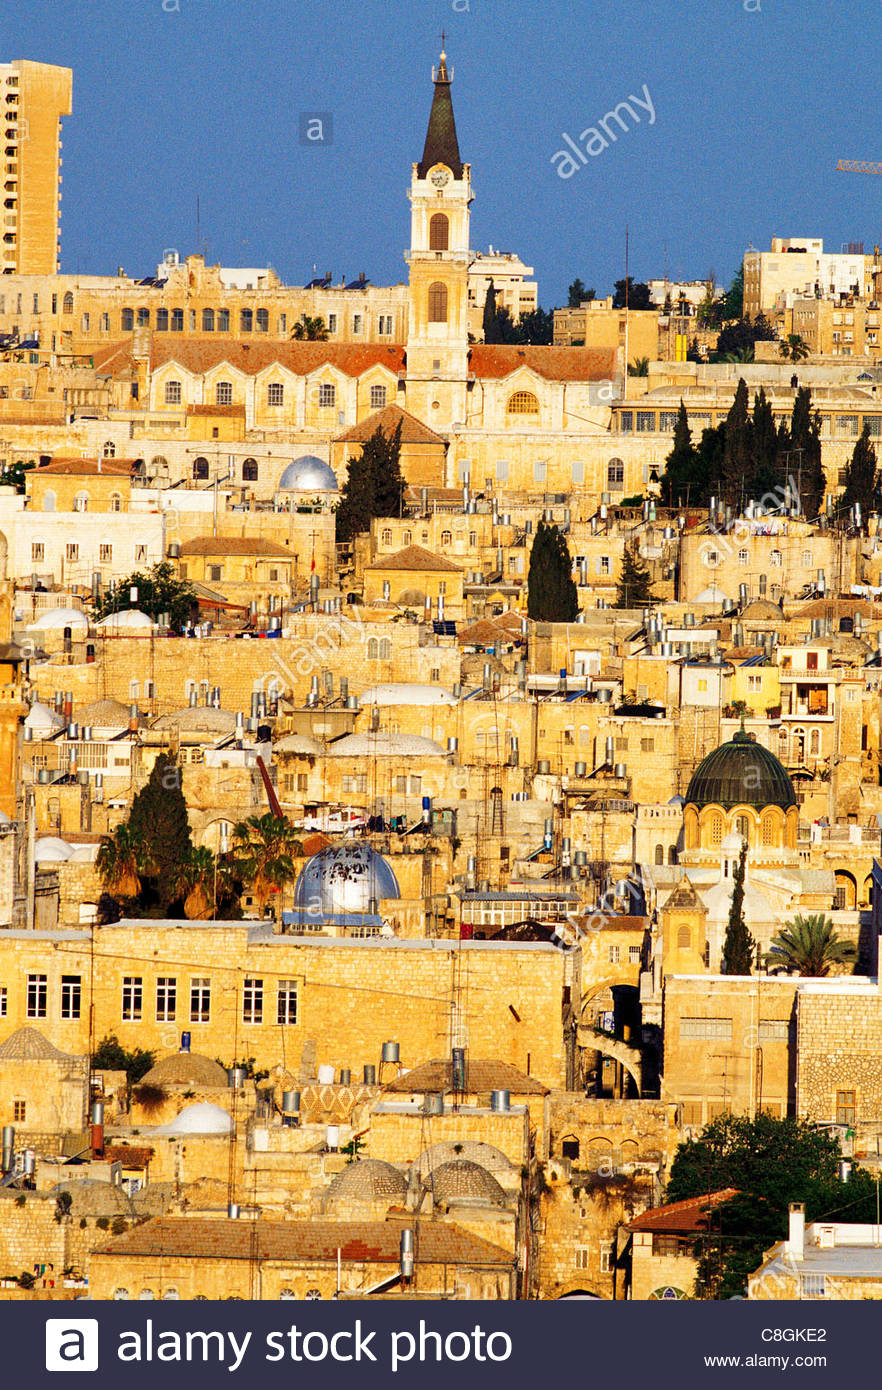 An overview of Jerusalem with mosques, churches and houses. - Stock Image